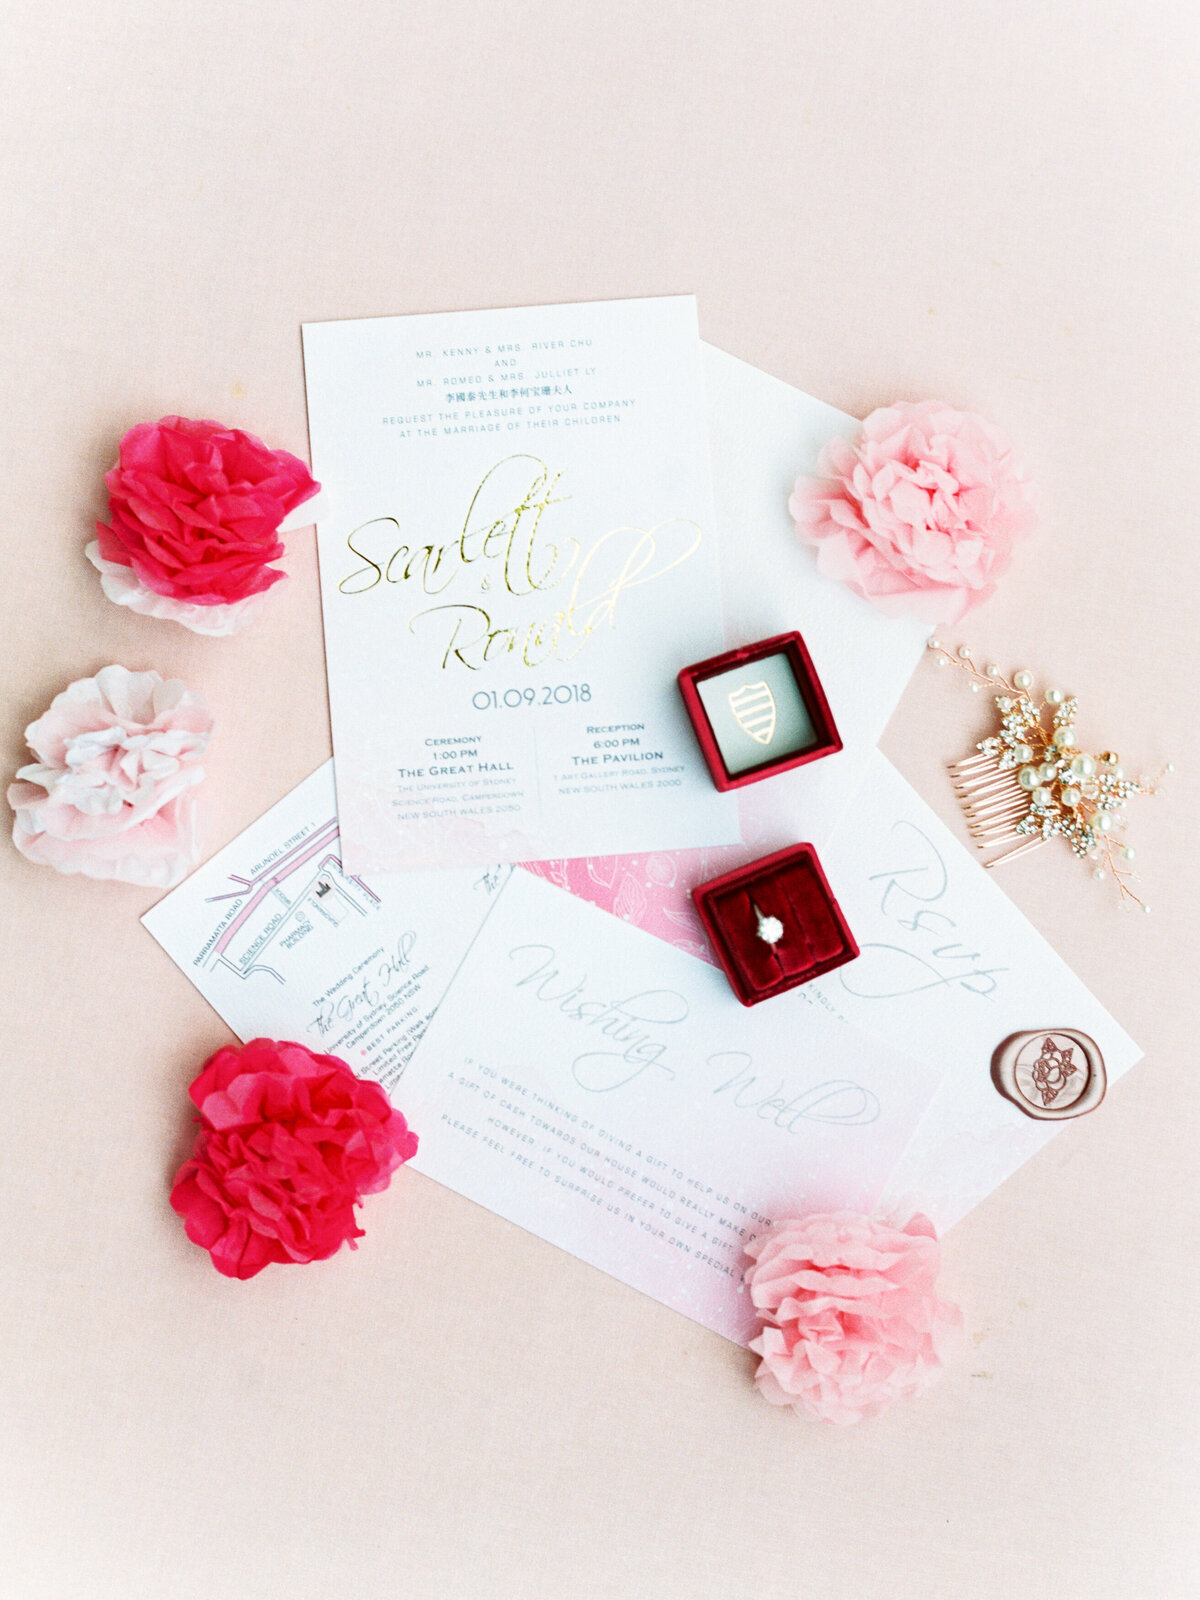 weareorigami-scarlett-ron-wedding-0002